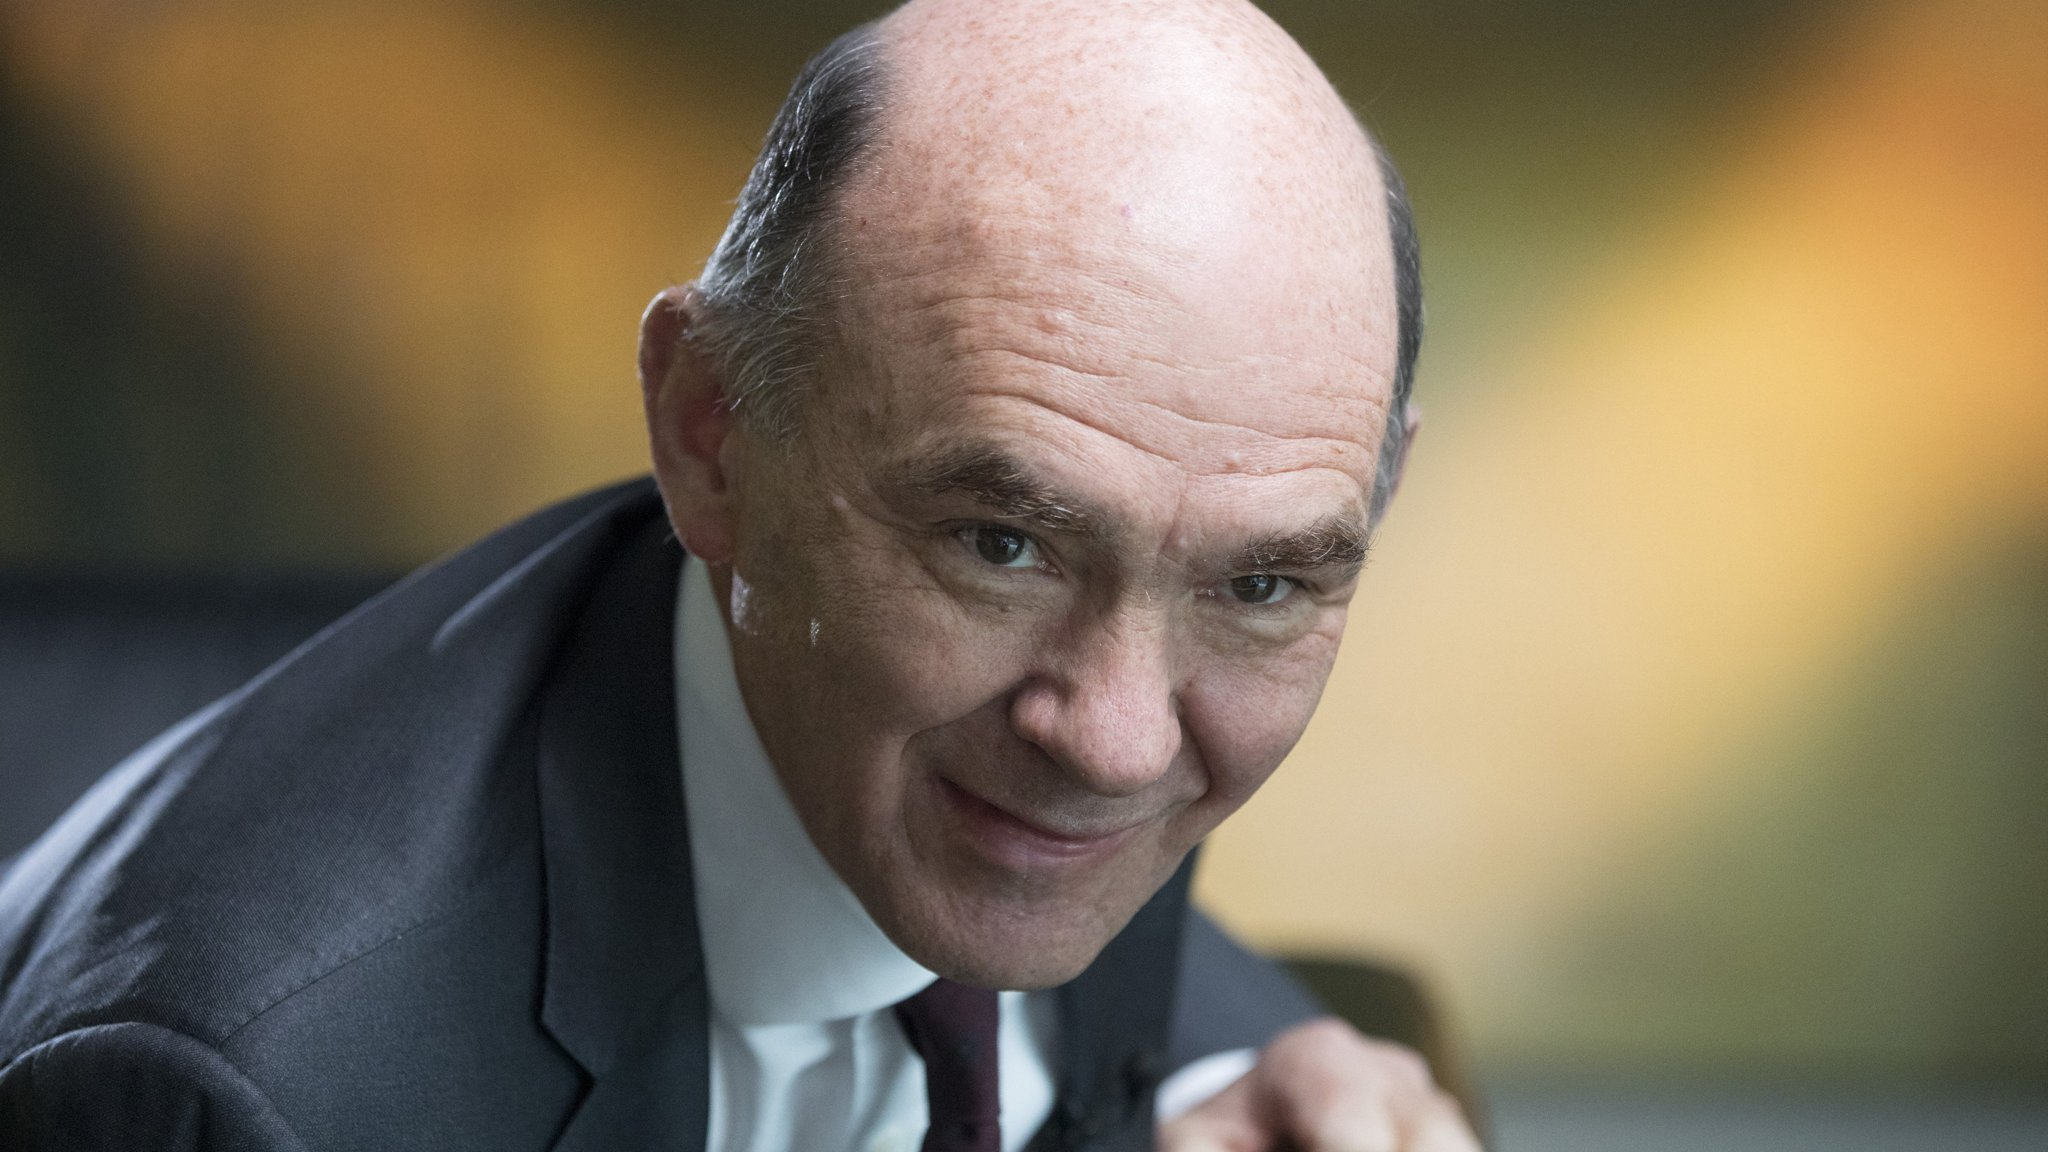 Vitol's Ian Taylor steps down as chief to become chairman